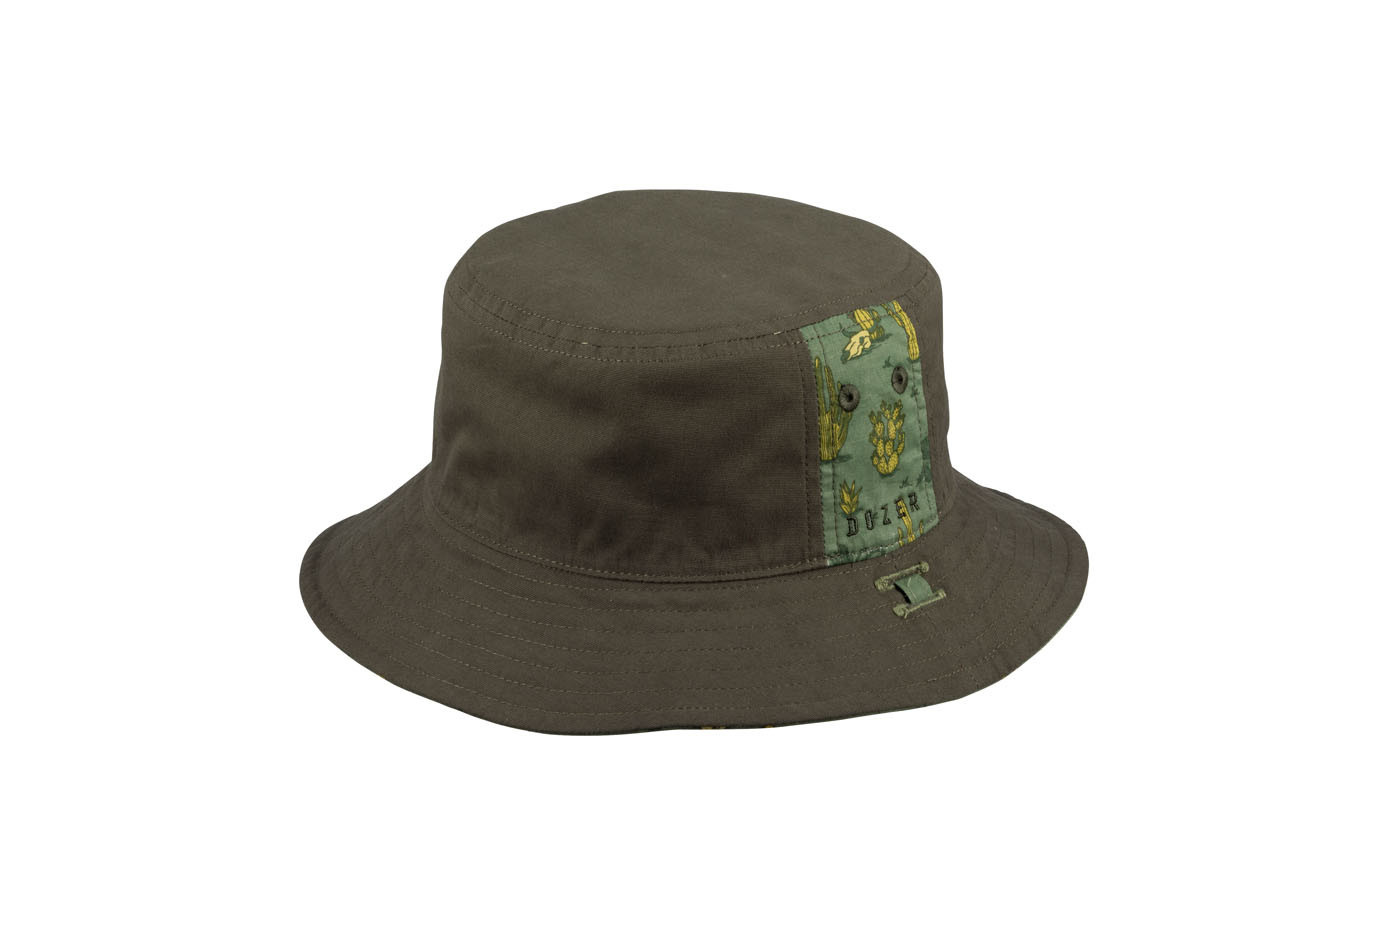 Millymook and Dozer Boys Bucket Sun Hat - Cacey - Olive S (2-5y)